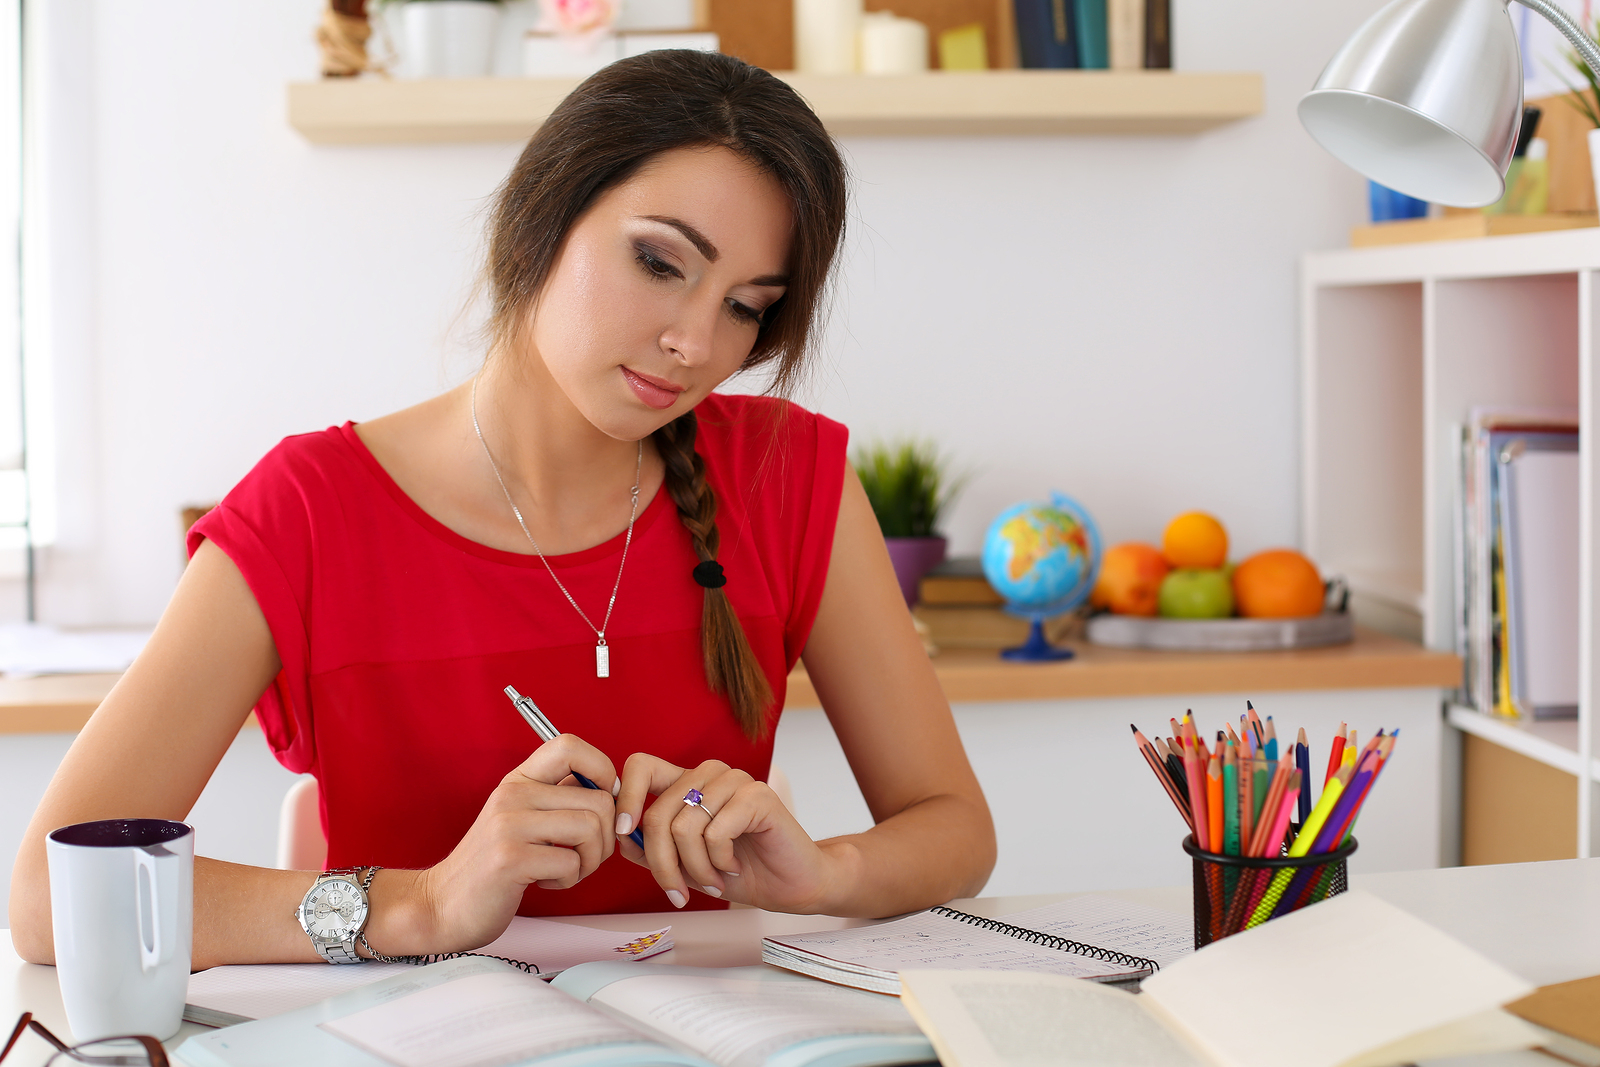 Female student at workplace portrait holding pen and looking in textbooks studying. Woman writing letter list plan making notes doing homework. Education self development and perfection concept